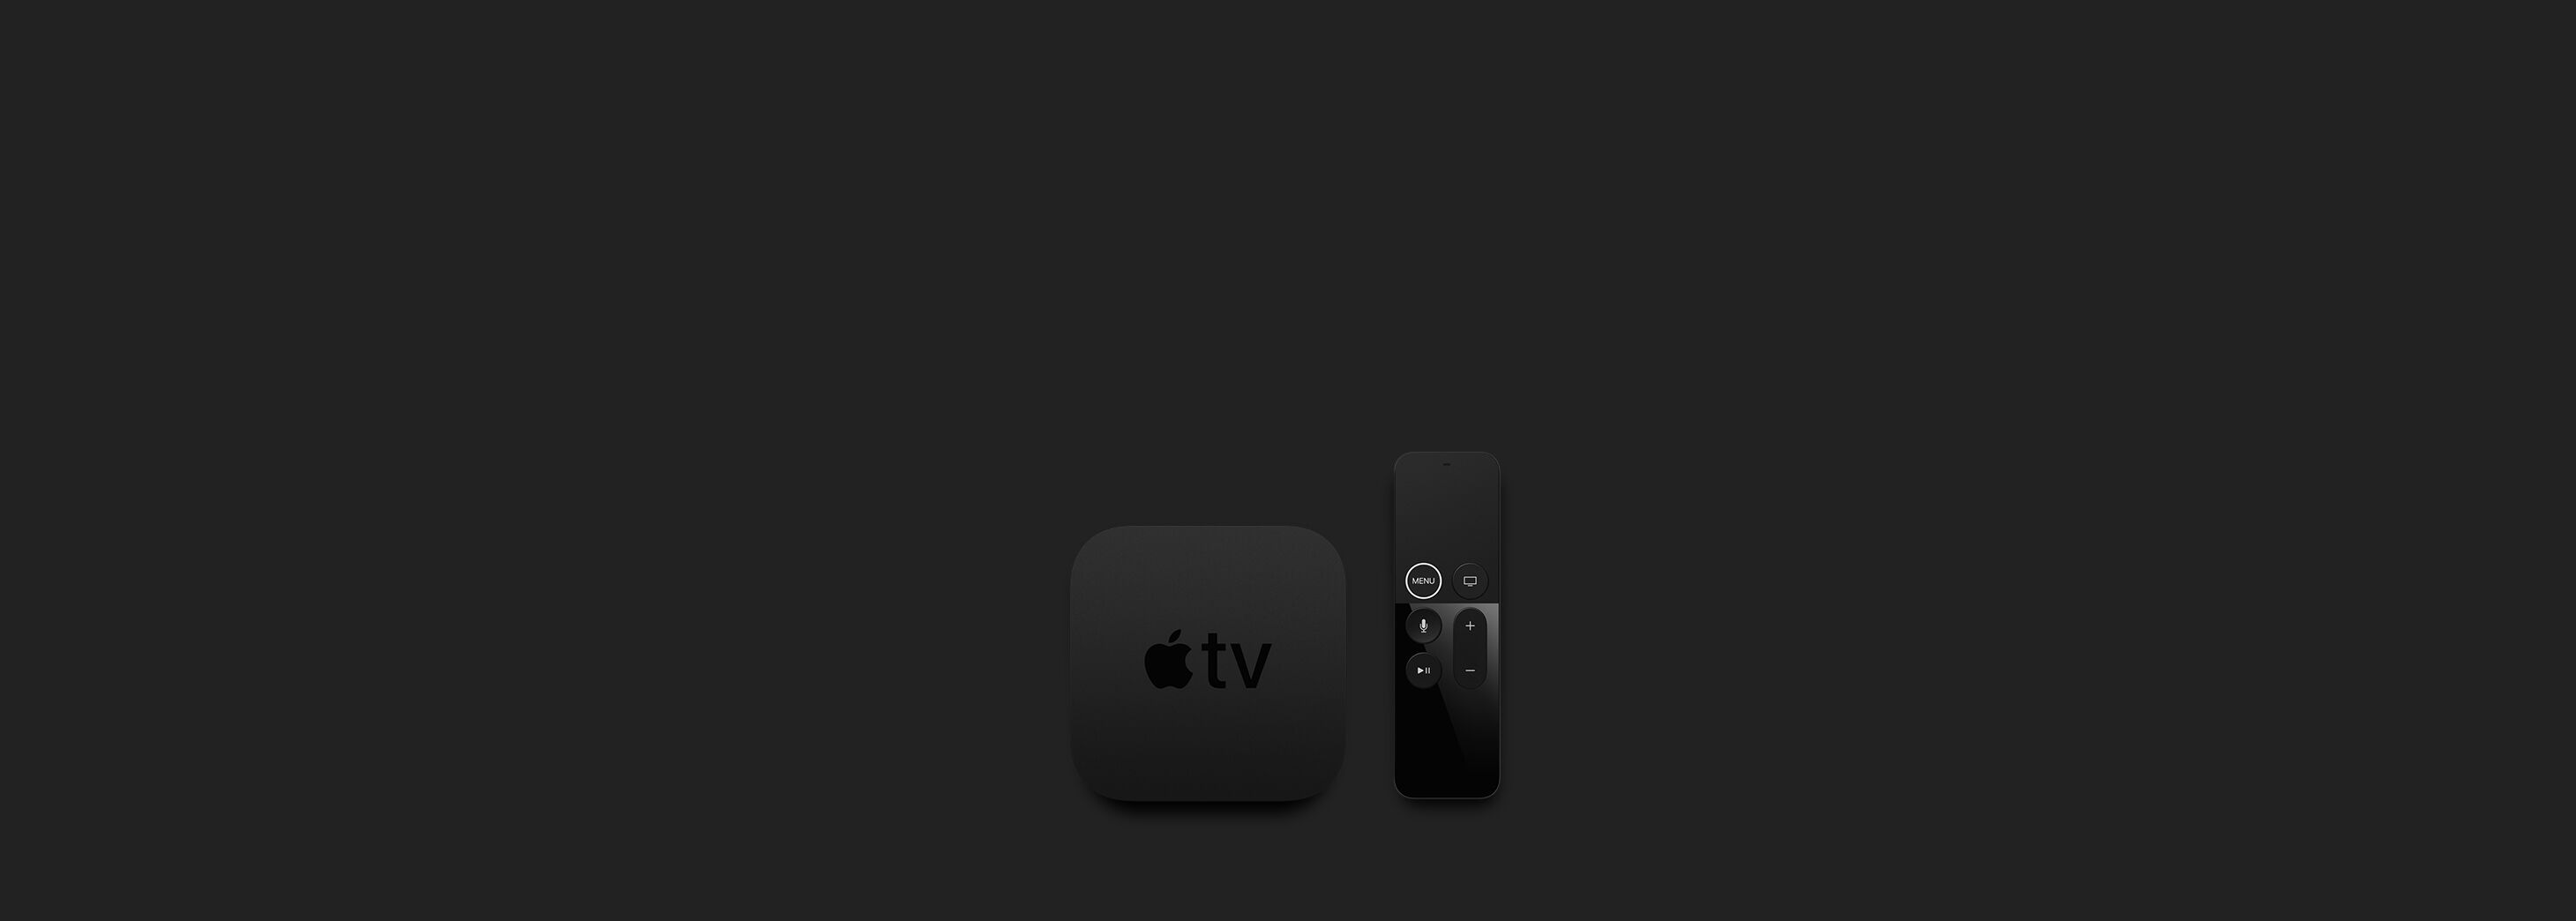 Kies de Apple TV die bij je past.